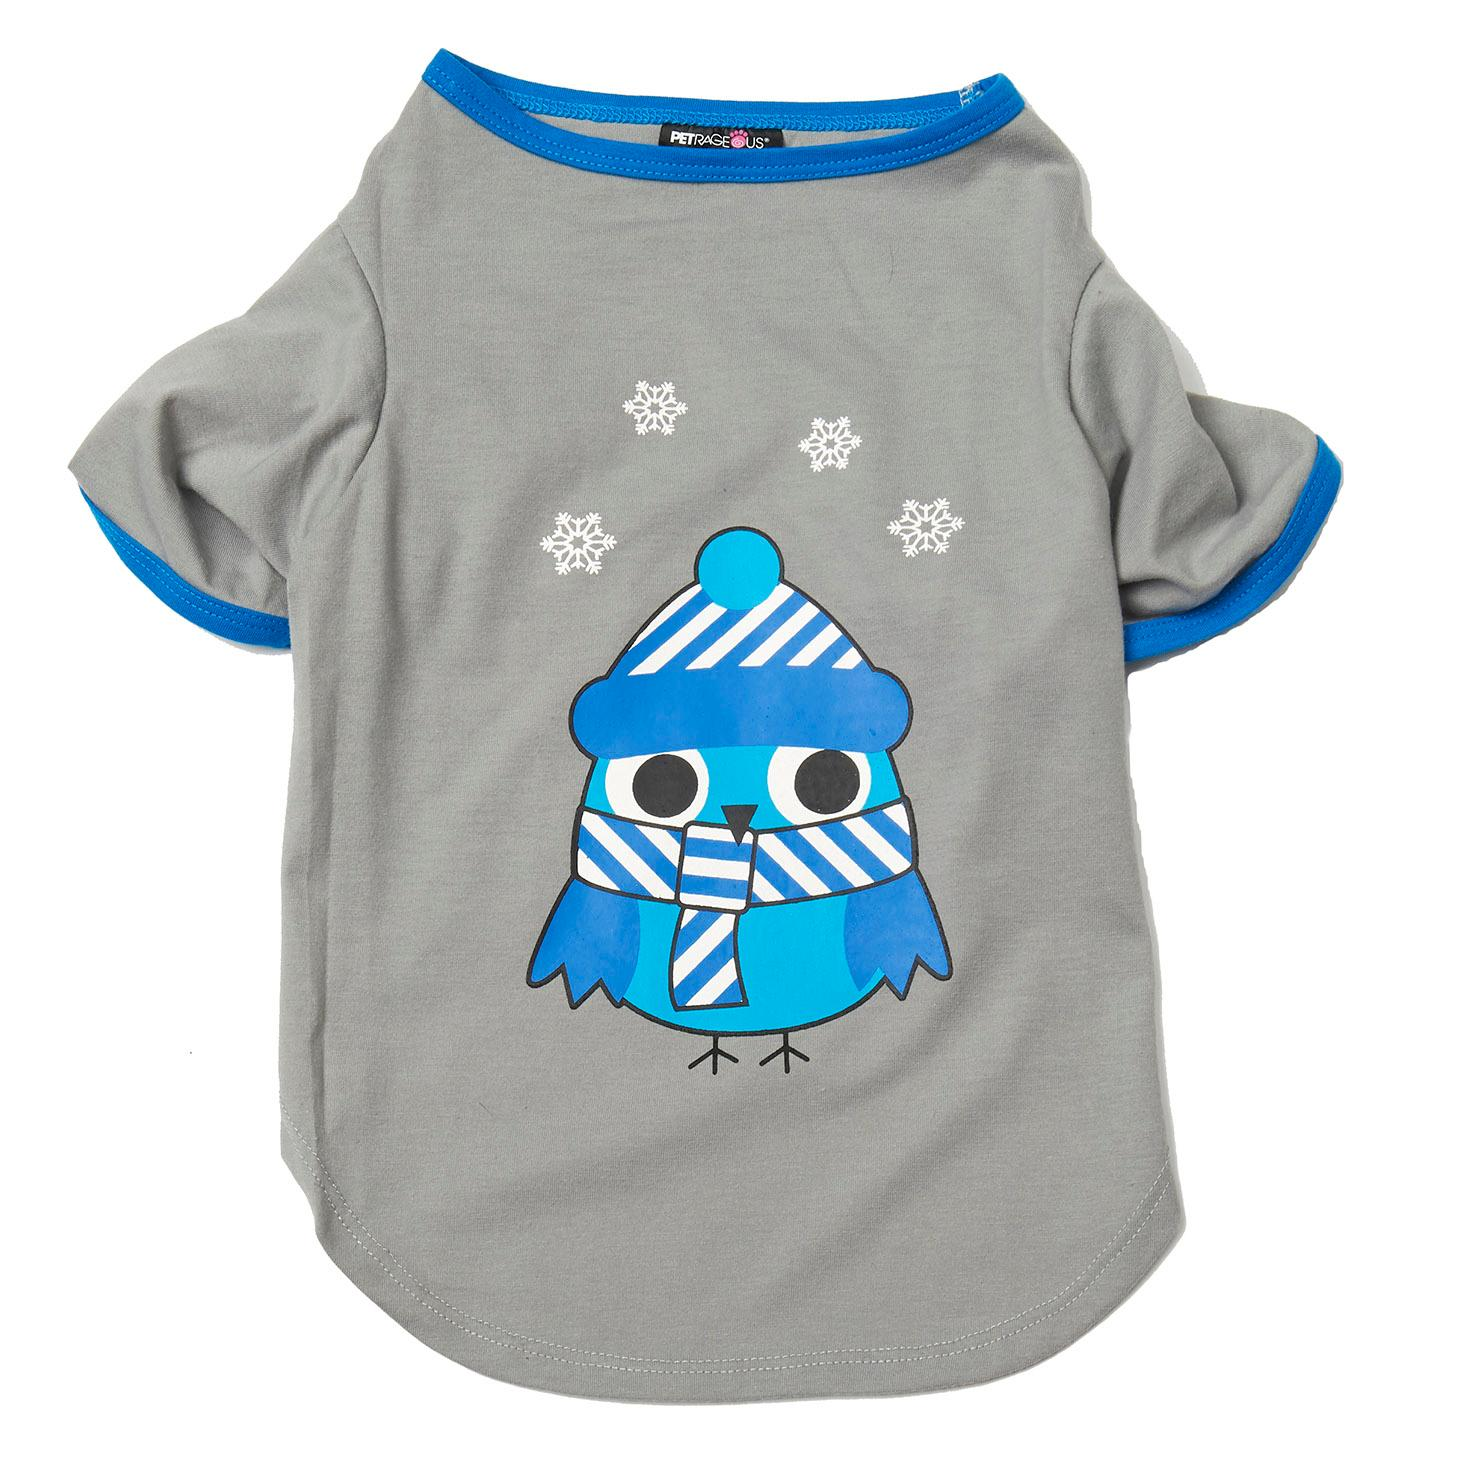 Winter Owl Dog Nightshirt - Gray